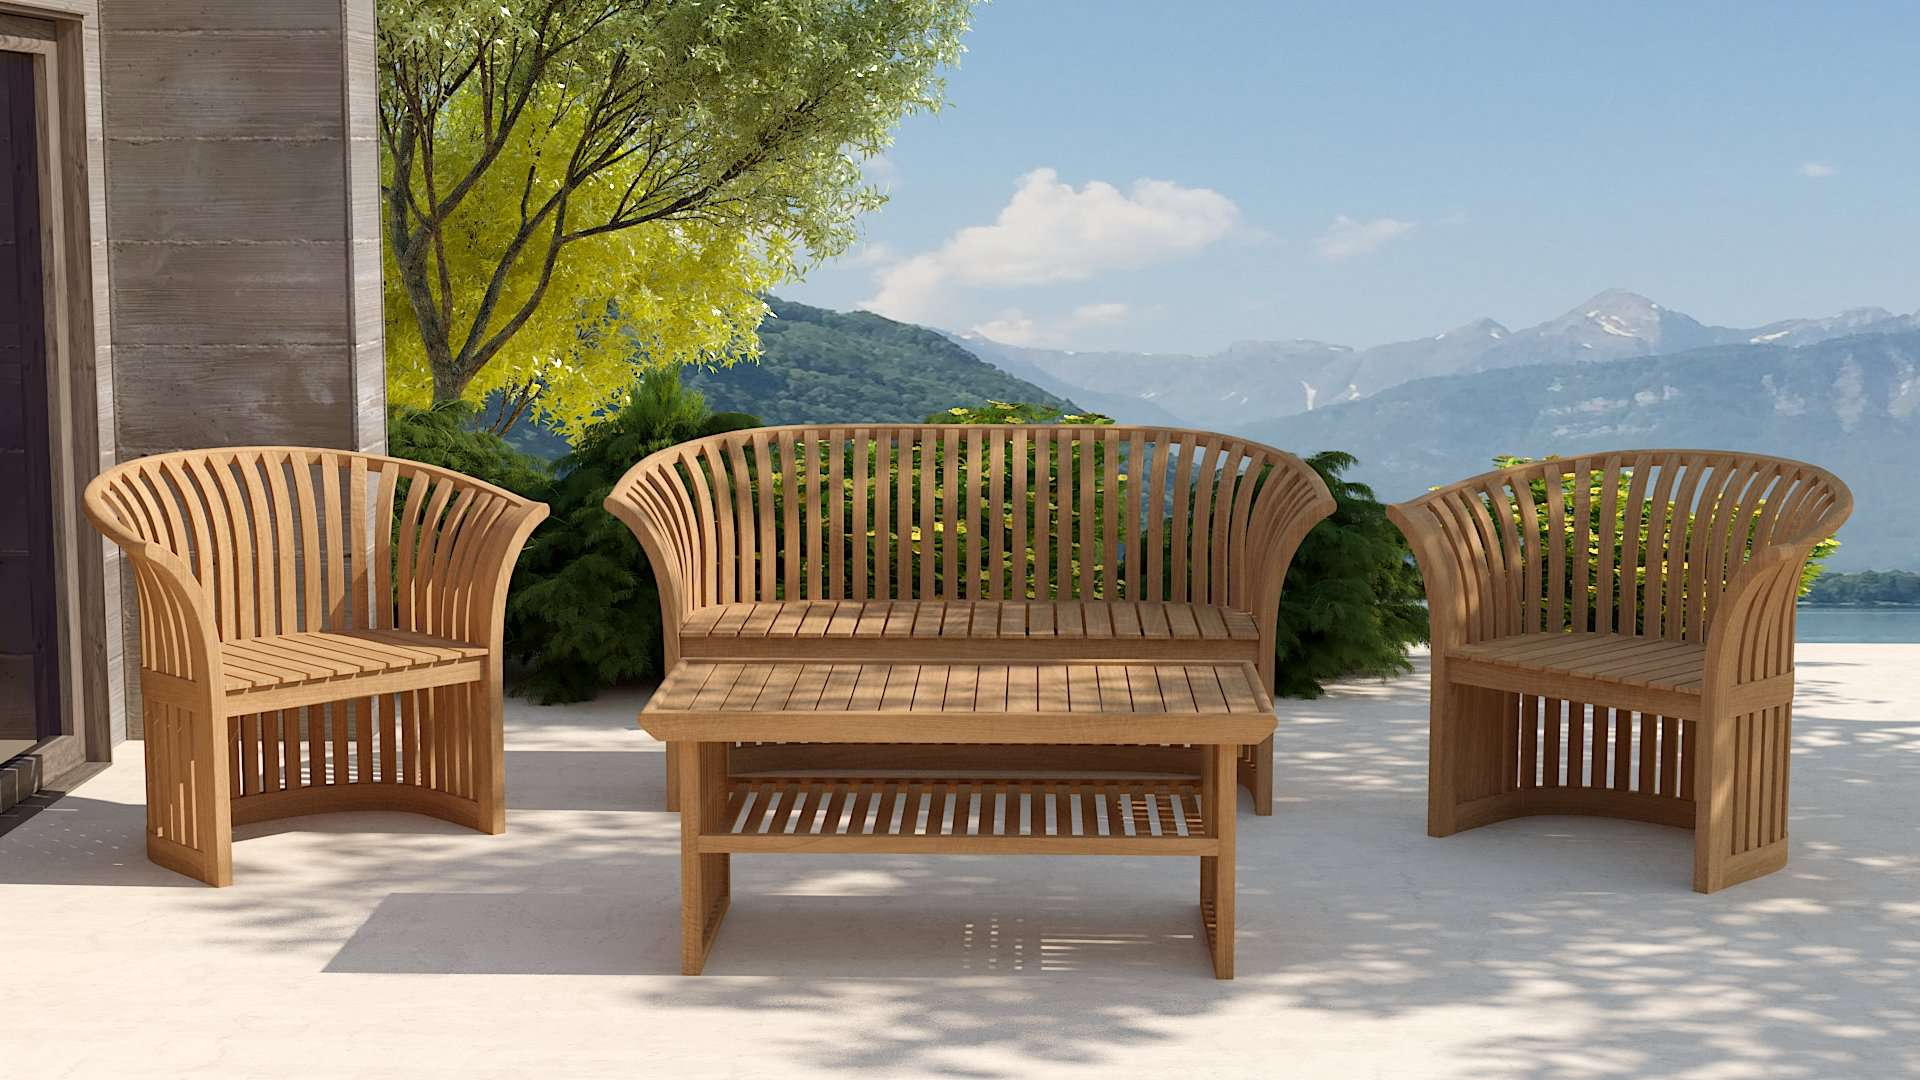 Conservatory Teak Sofa  - Chic Teak® | Luxury Teak Furniture